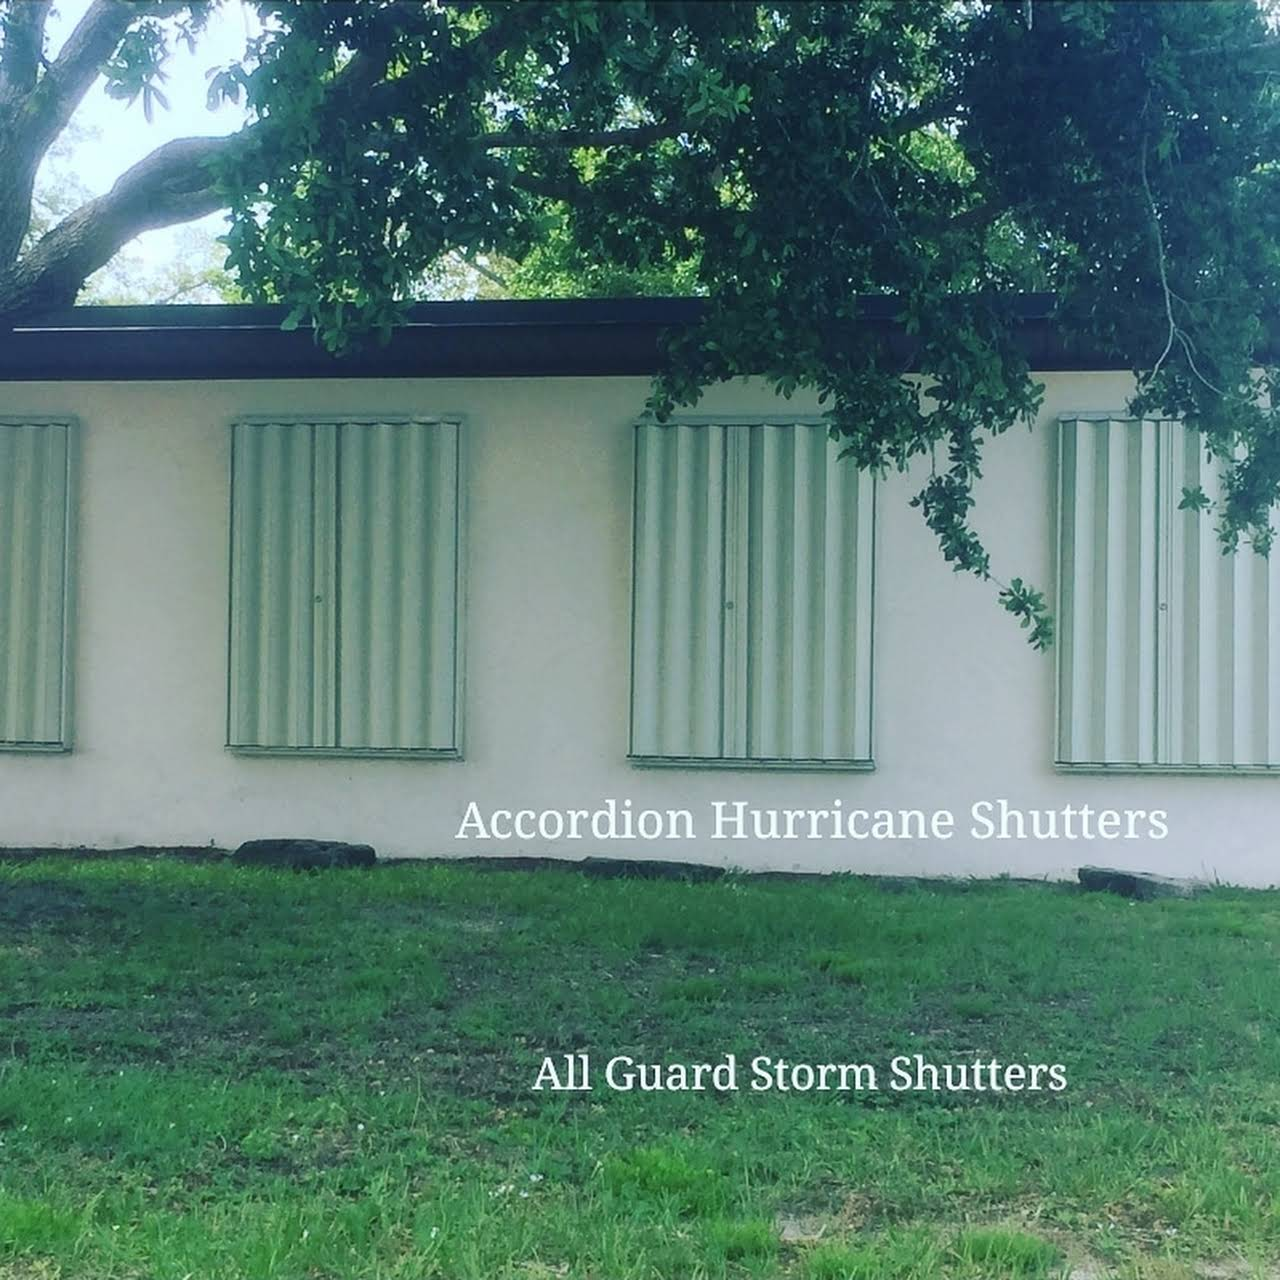 All Guard Shutters all guard storm shutters - window treatment store in rockledge